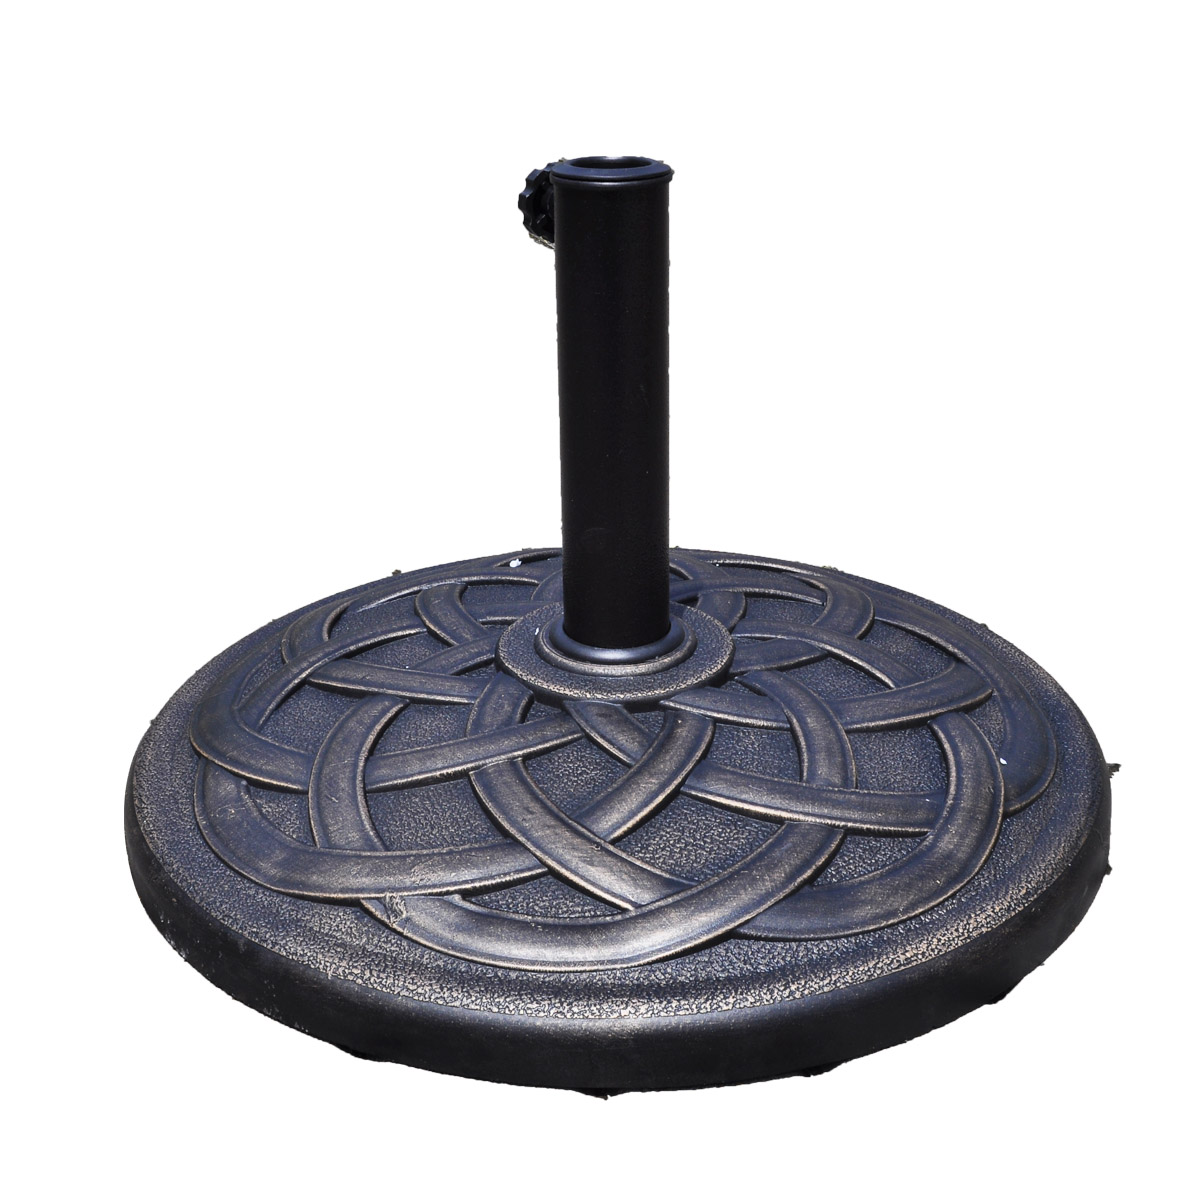 Charmant Costway 22u0027u0027 Round Umbrella Base Stand Market Patio Standing Outdoor Living  Heavy Duty